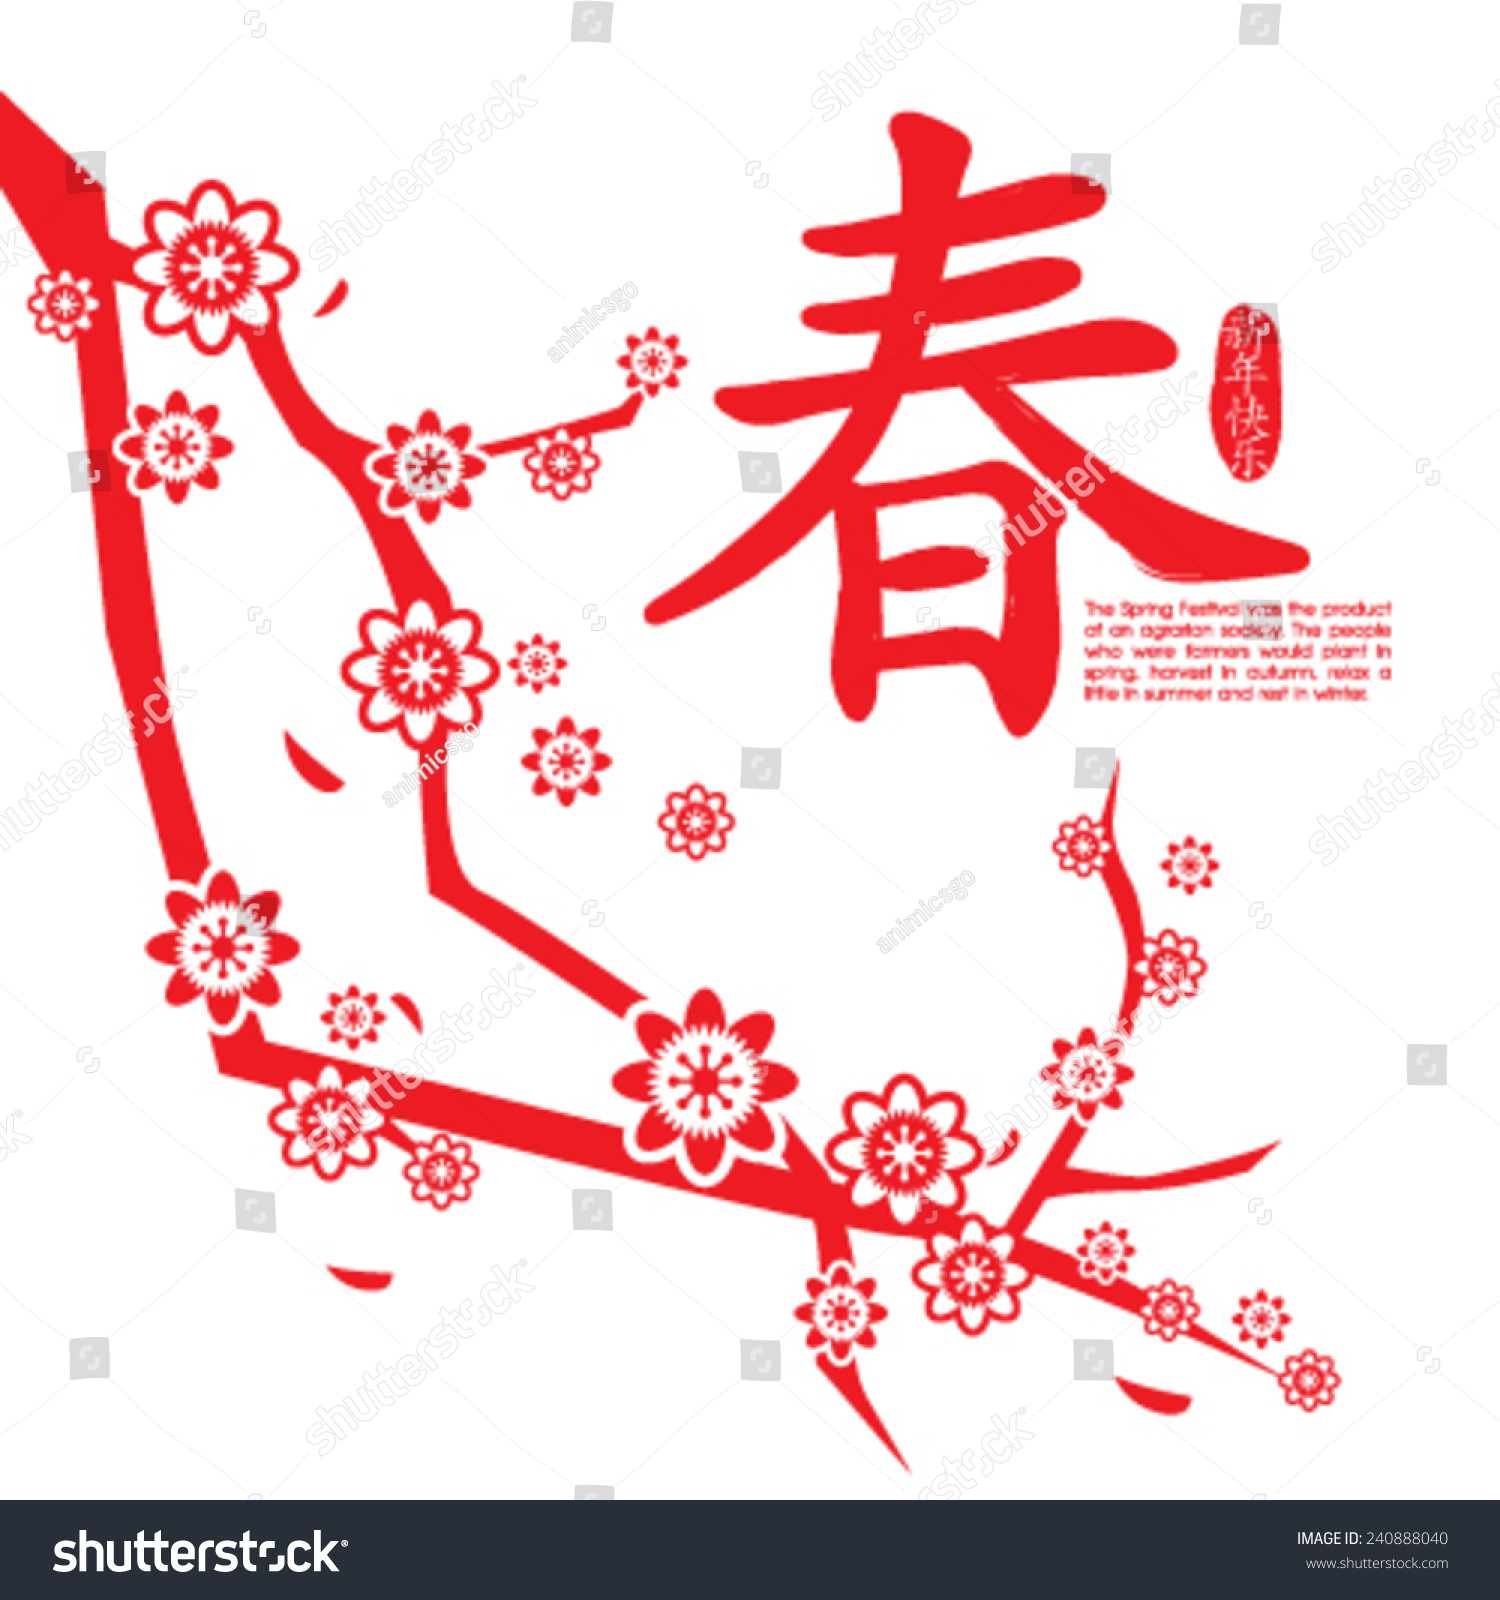 Chinese New Year Card Plum Blossom Stock Vector 240888040 ...